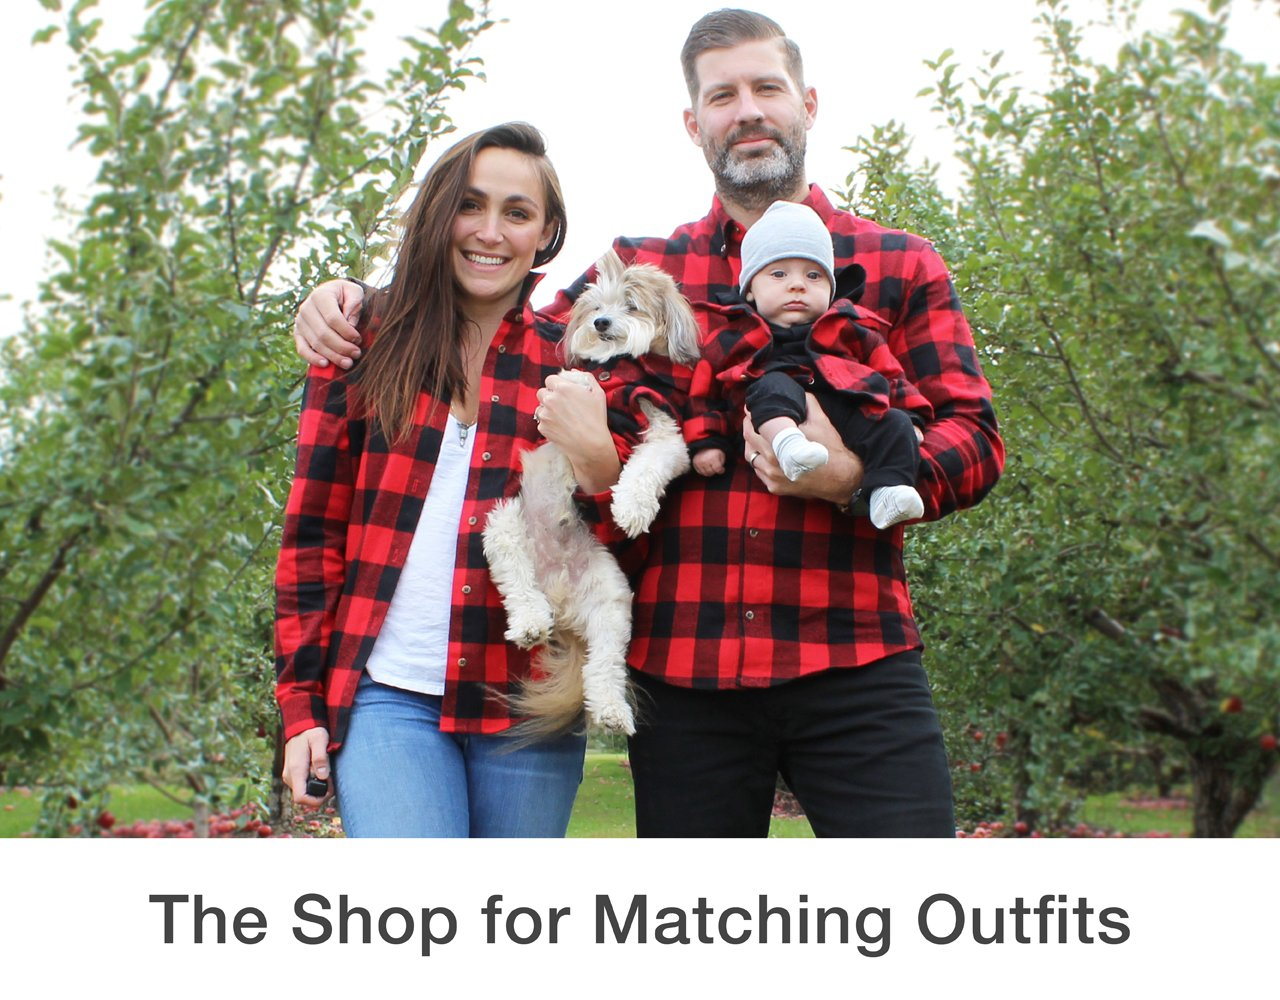 Matching Shirts for Dogs and People | Twinning Outfits for Dogs and Dog Parents